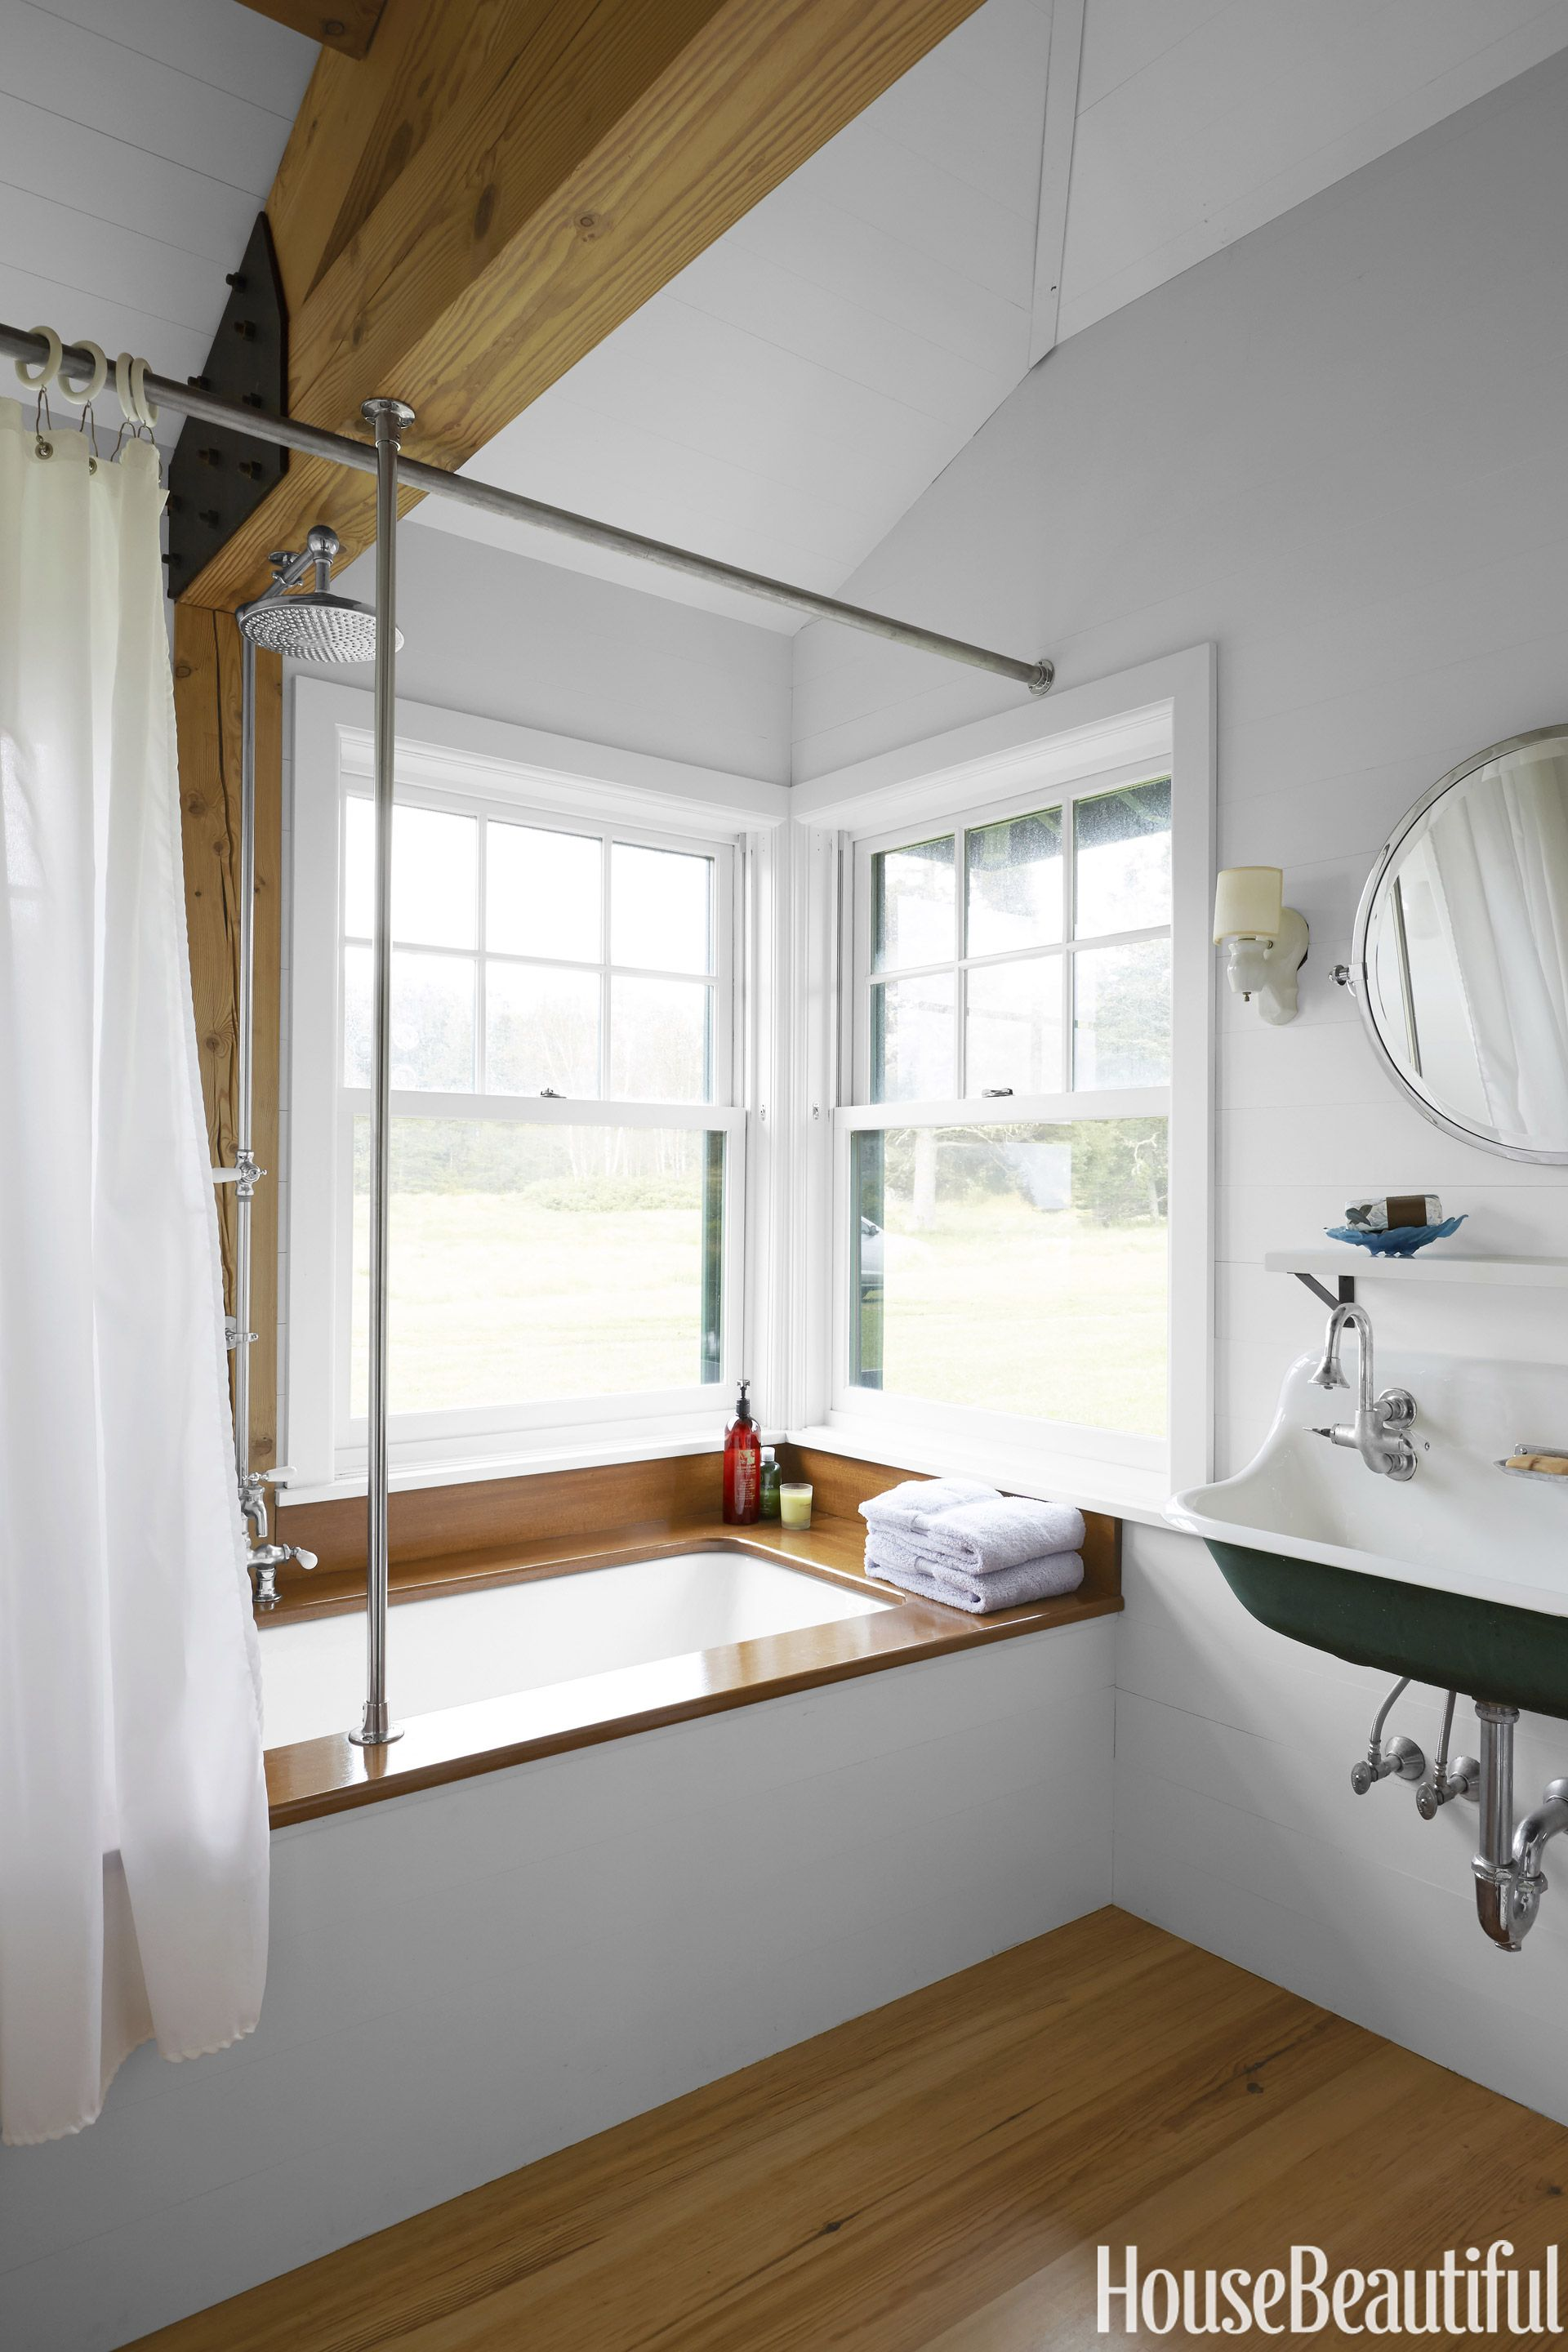 Best Kitchen Gallery: 140 Ways To Make Any Bathroom Feel Like An At Home Spa Woodwork of New England Bathrooms Designs  on rachelxblog.com